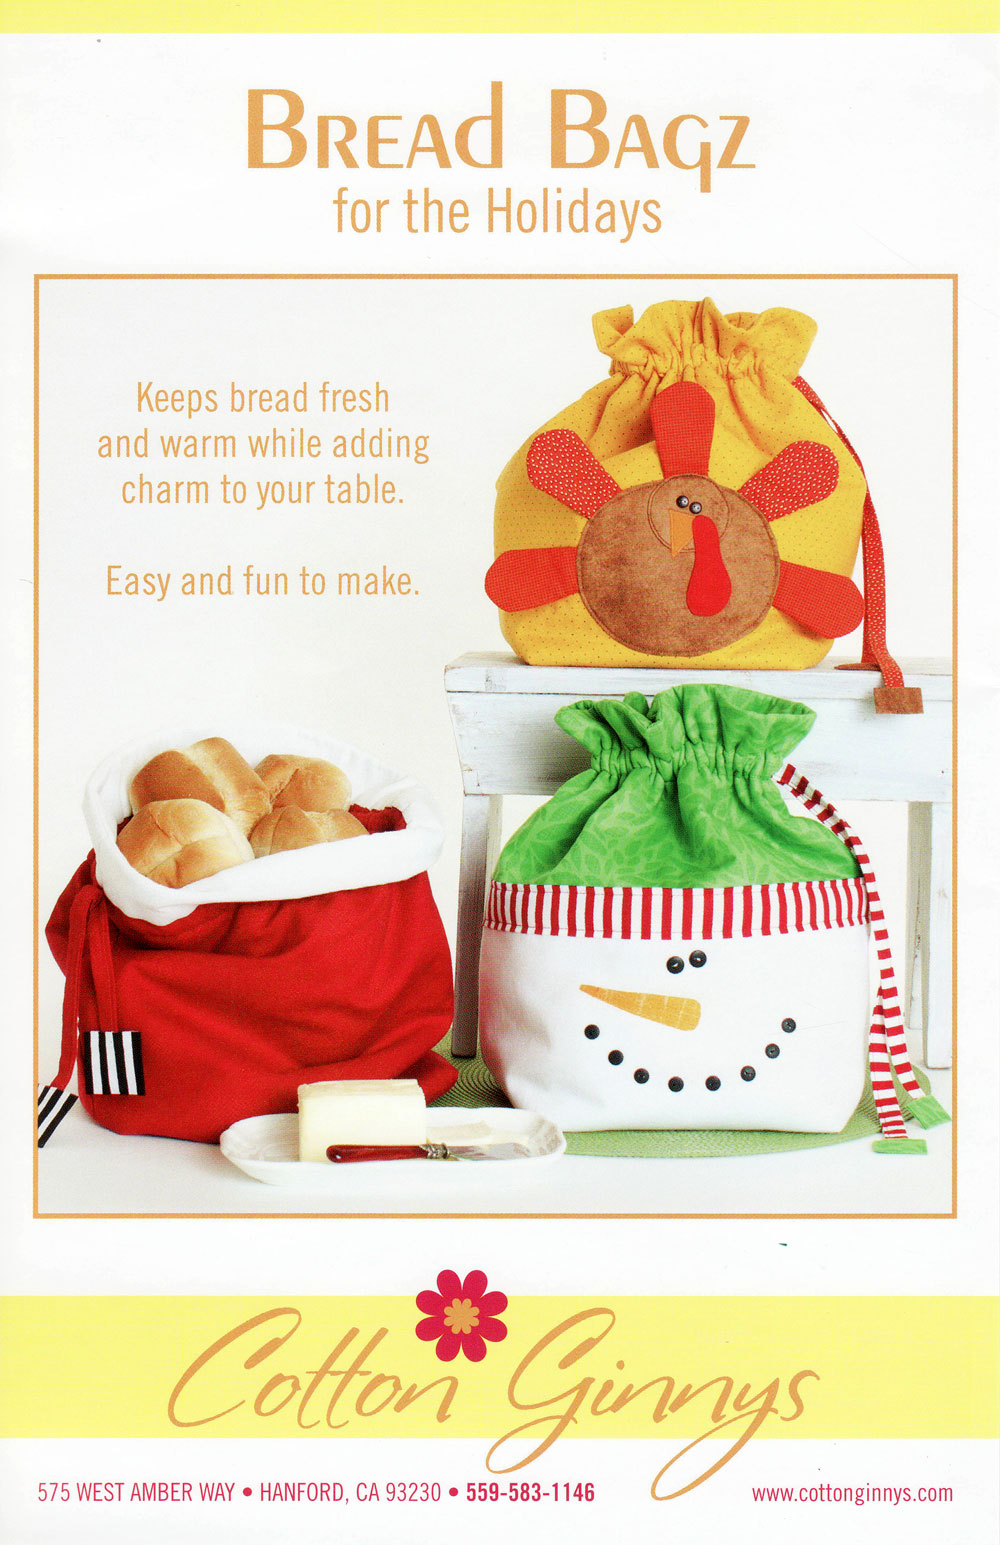 Cotton-Ginnys-Bread-Bagz-for-The-Holidays-sewing-pattern-front.jpg